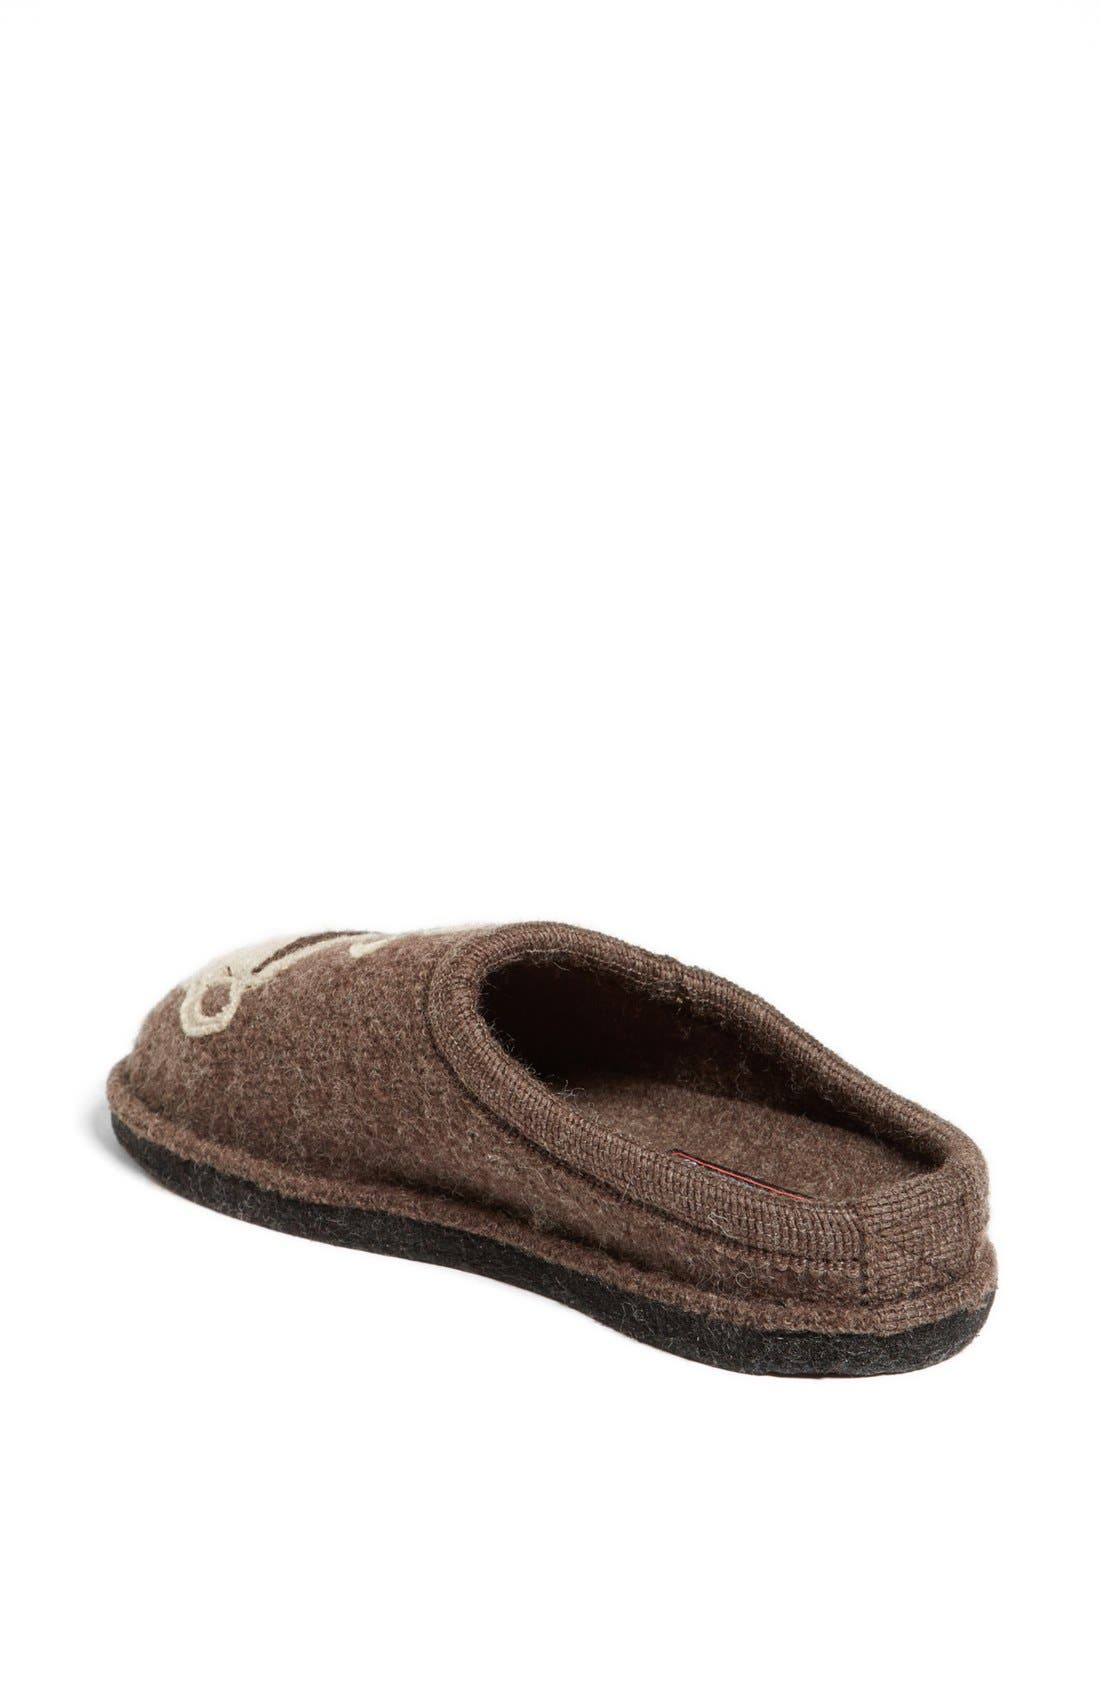 Alternate Image 2  - Haflinger 'Coffee' Slipper